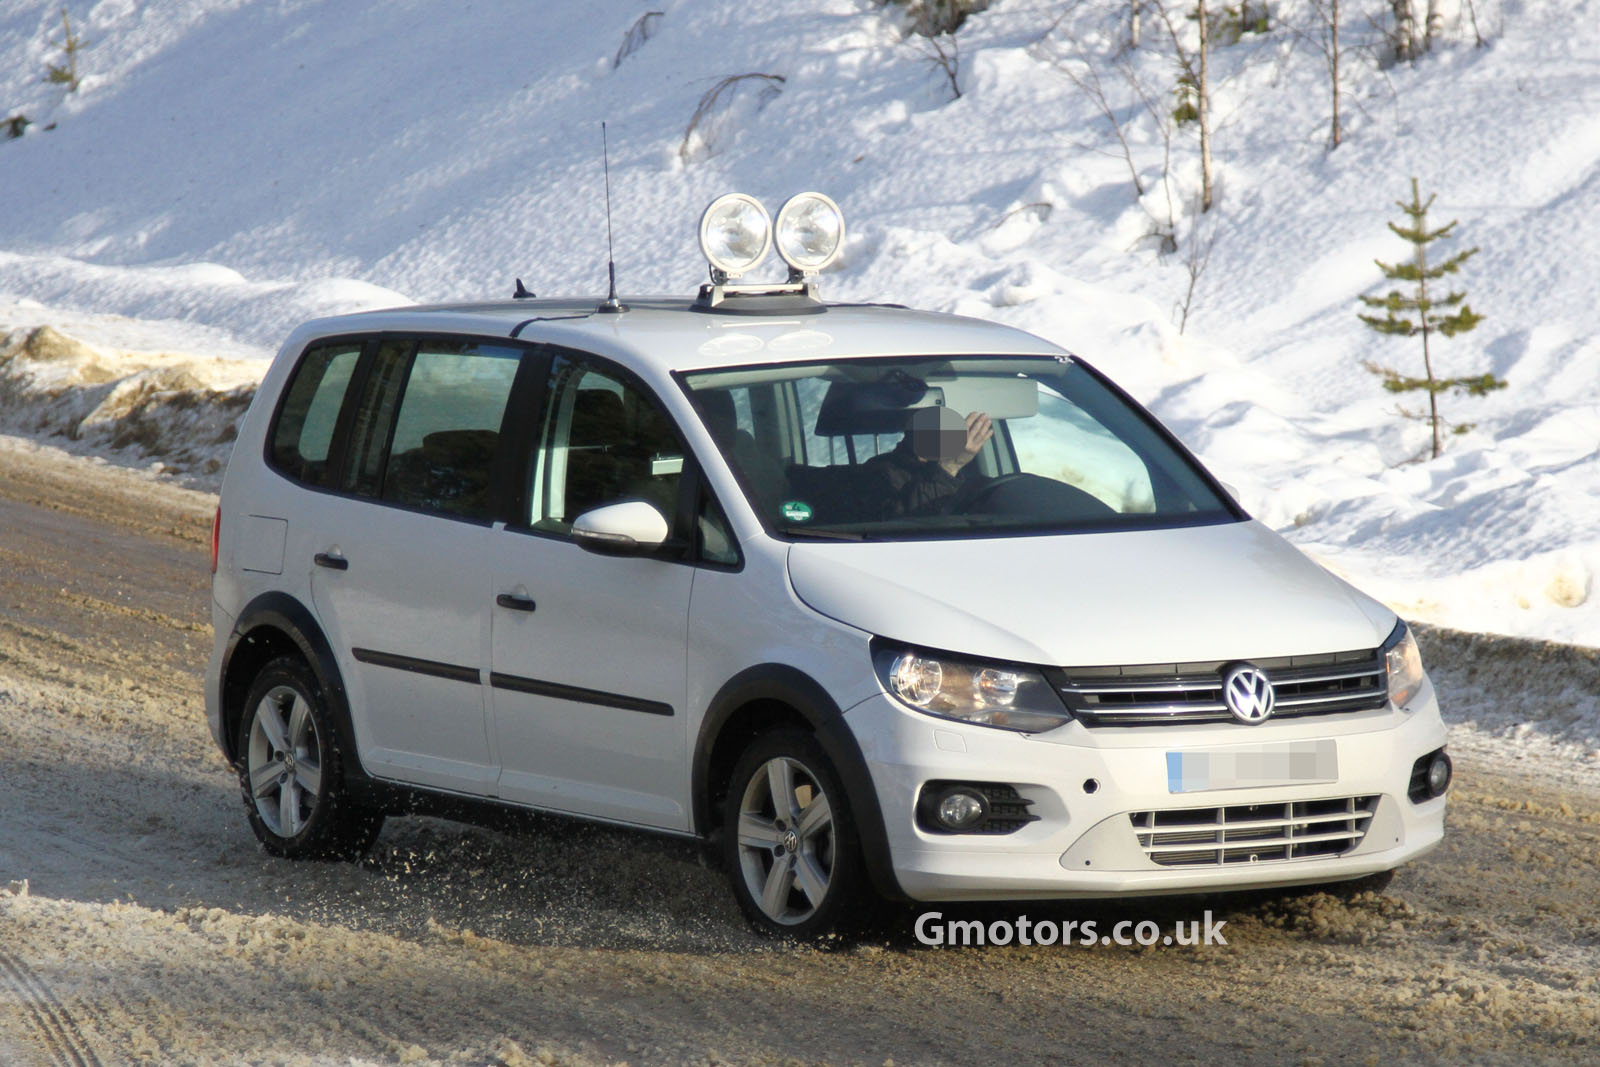 nouveau vw touran 2014 spyshot autos weblog. Black Bedroom Furniture Sets. Home Design Ideas